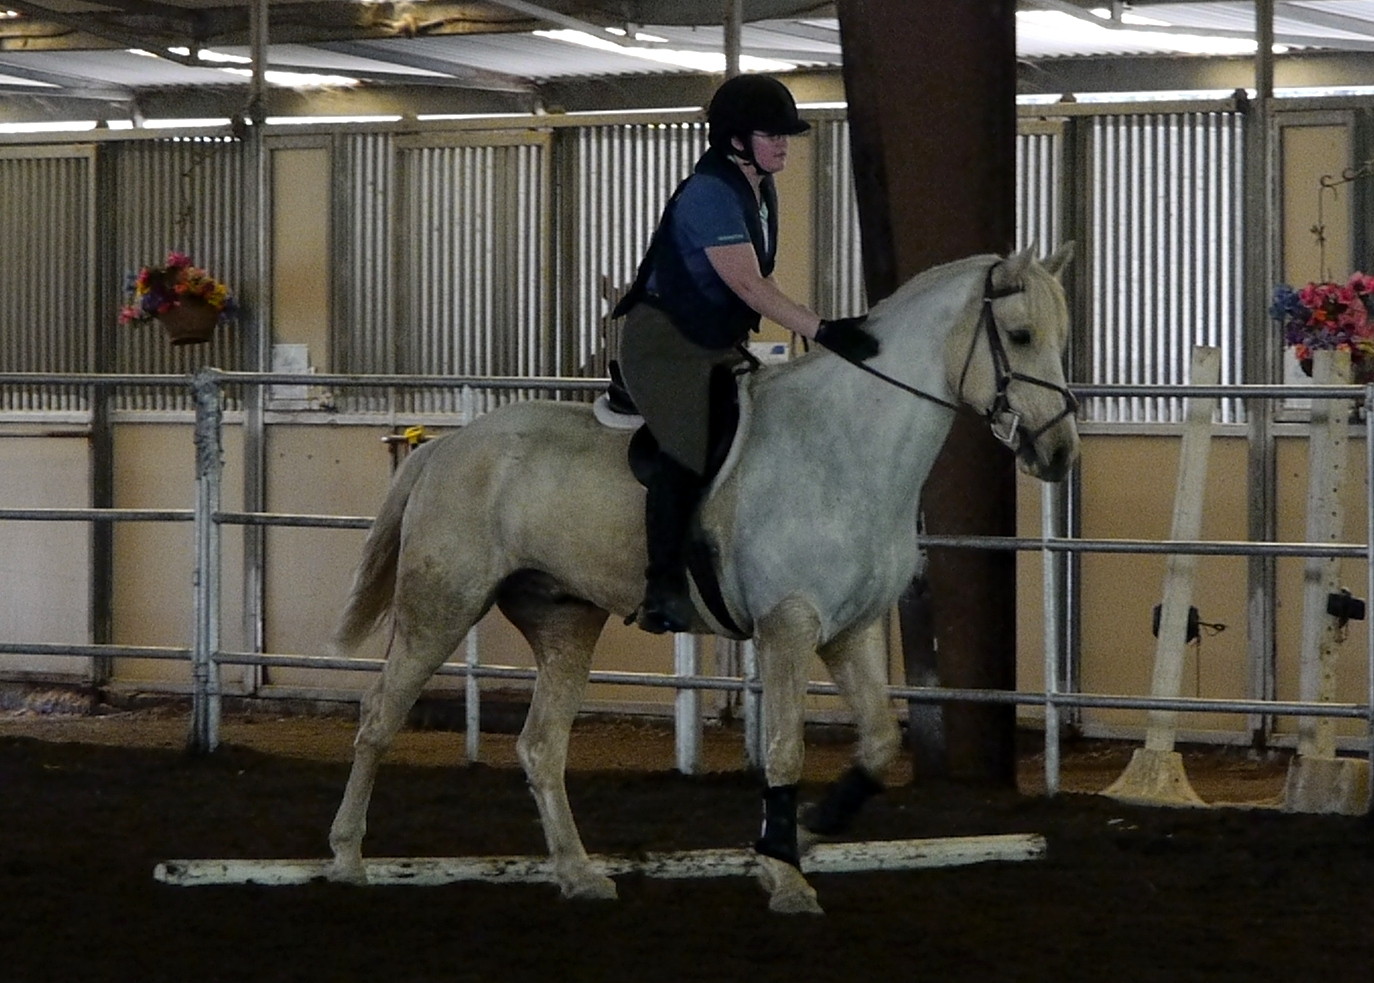 Lots of pats for Mustangs who don't kill their riders